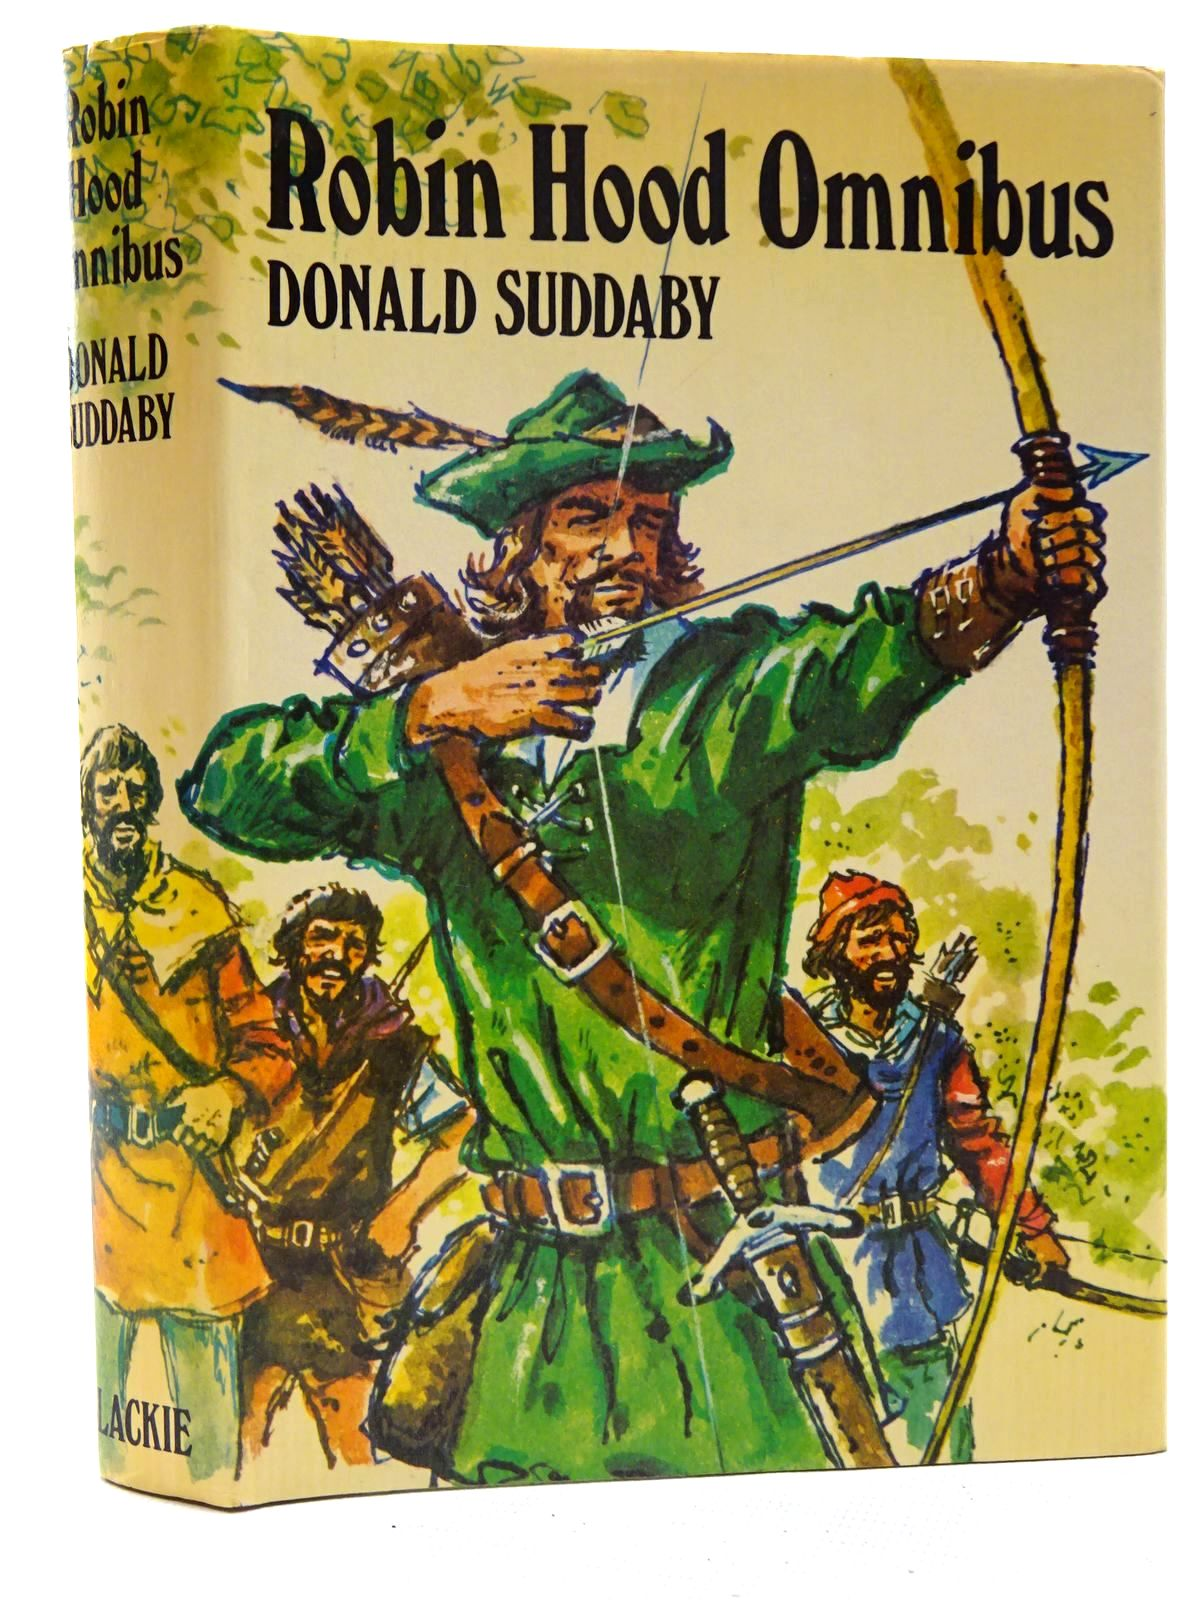 Photo of ROBIN HOOD OMNIBUS written by Suddaby, Donald published by Blackie & Son Ltd. (STOCK CODE: 1317327)  for sale by Stella & Rose's Books